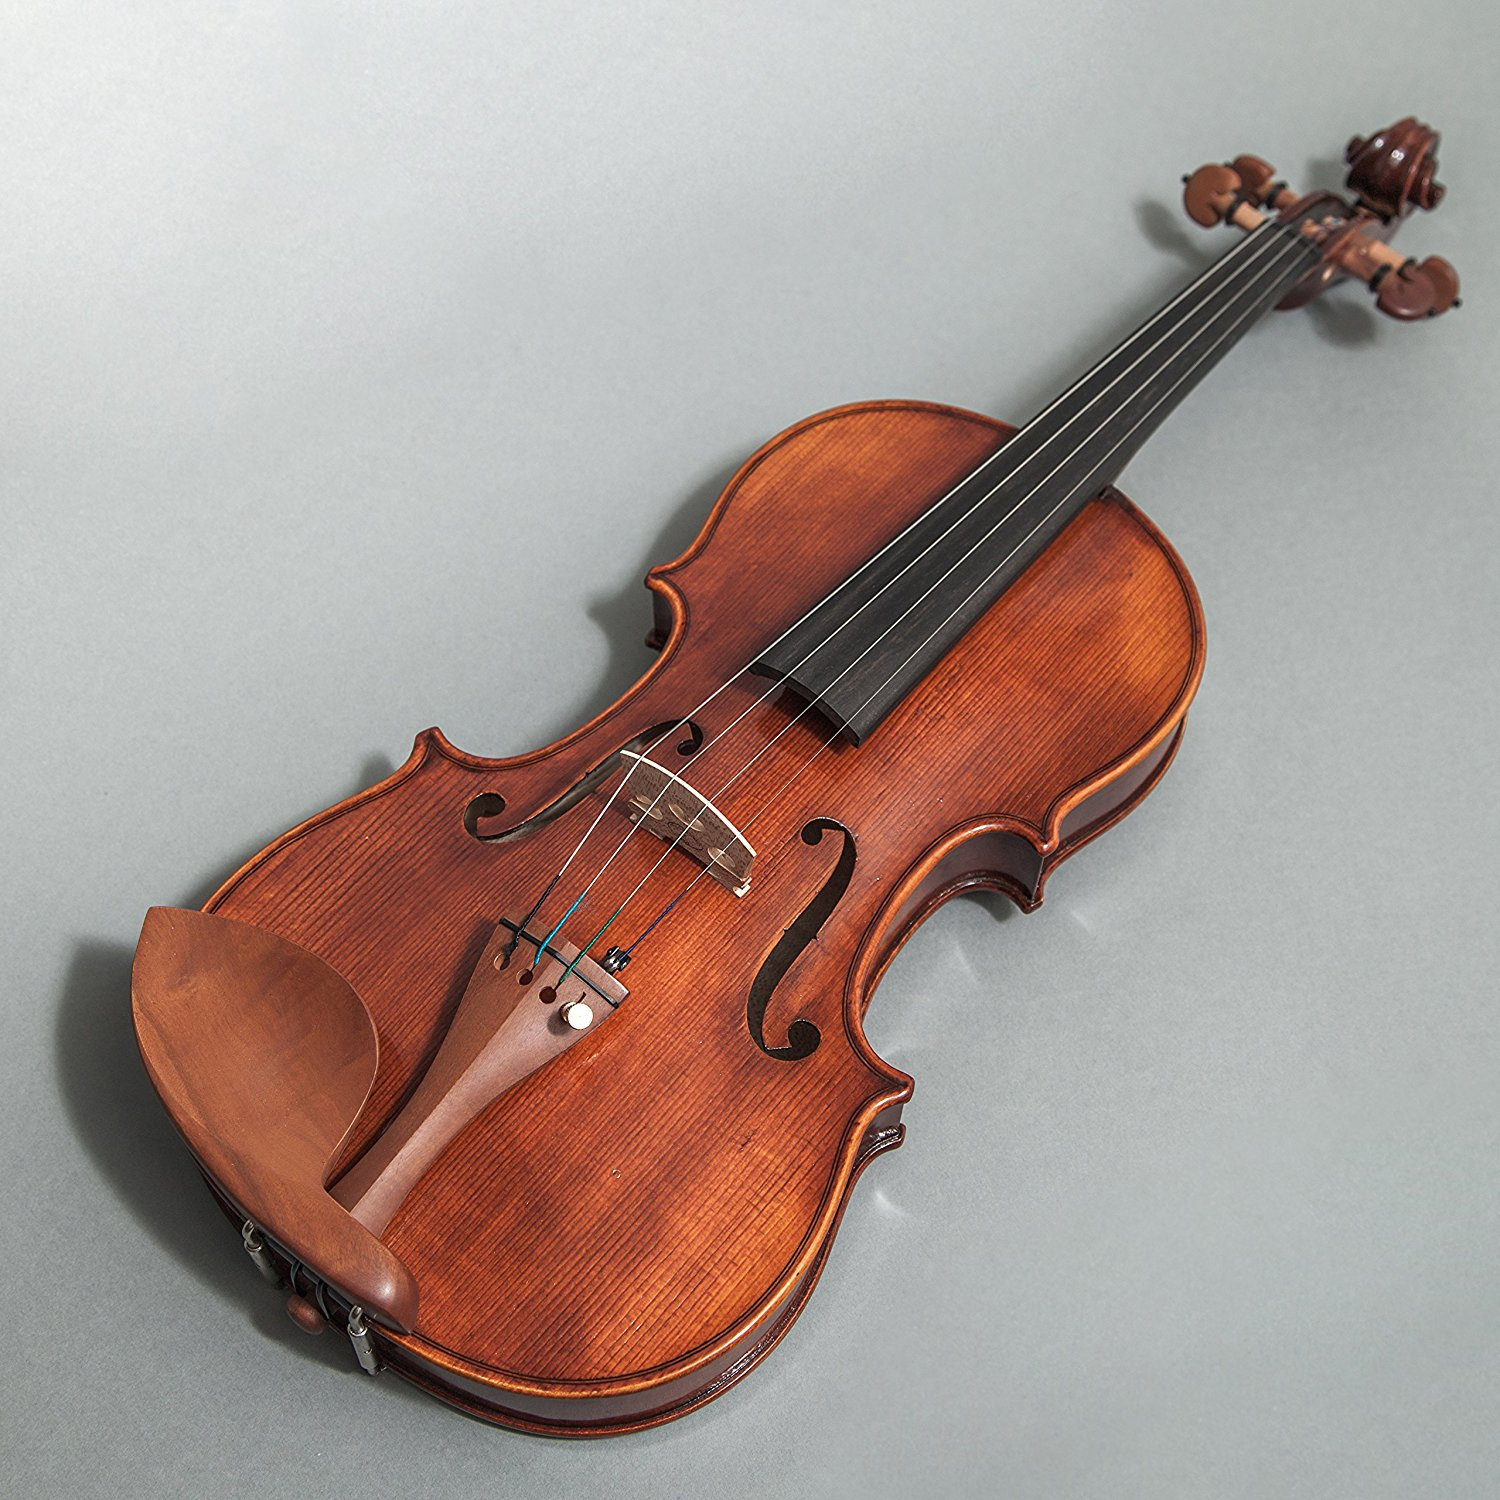 Sky FL001-JB-O400 Hand Made Professional 4/4 Full Size Violin Jujube Wood Fitted Highly Flammed ANTIQUE Look